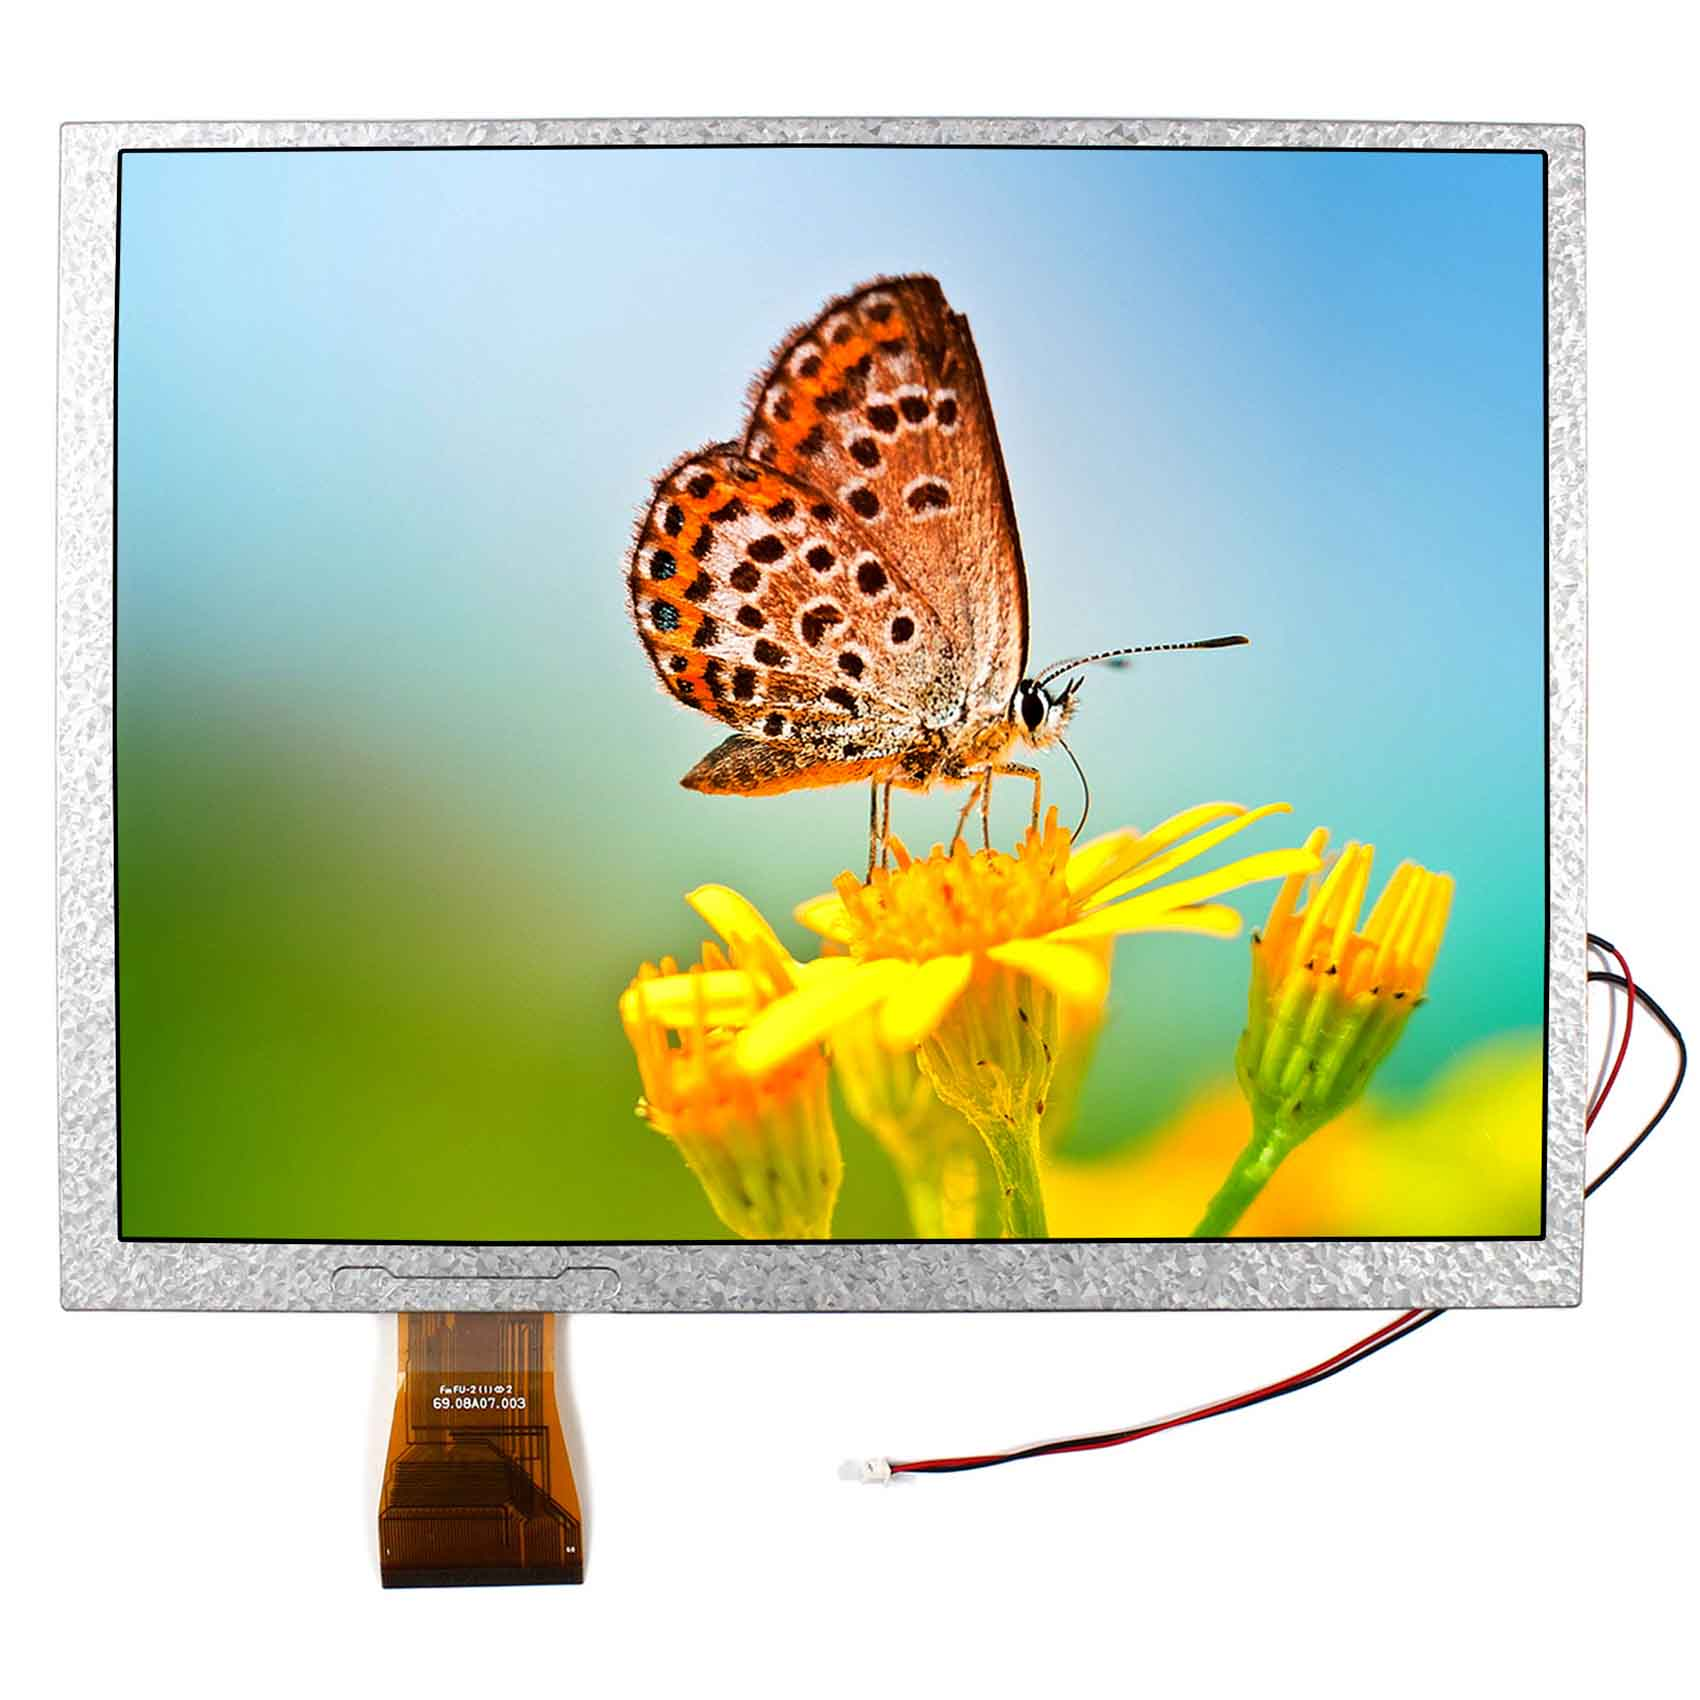 цена на 10.4 TFT LCD Display A104SN03 V1 800x600 10.4inch LCD Screen